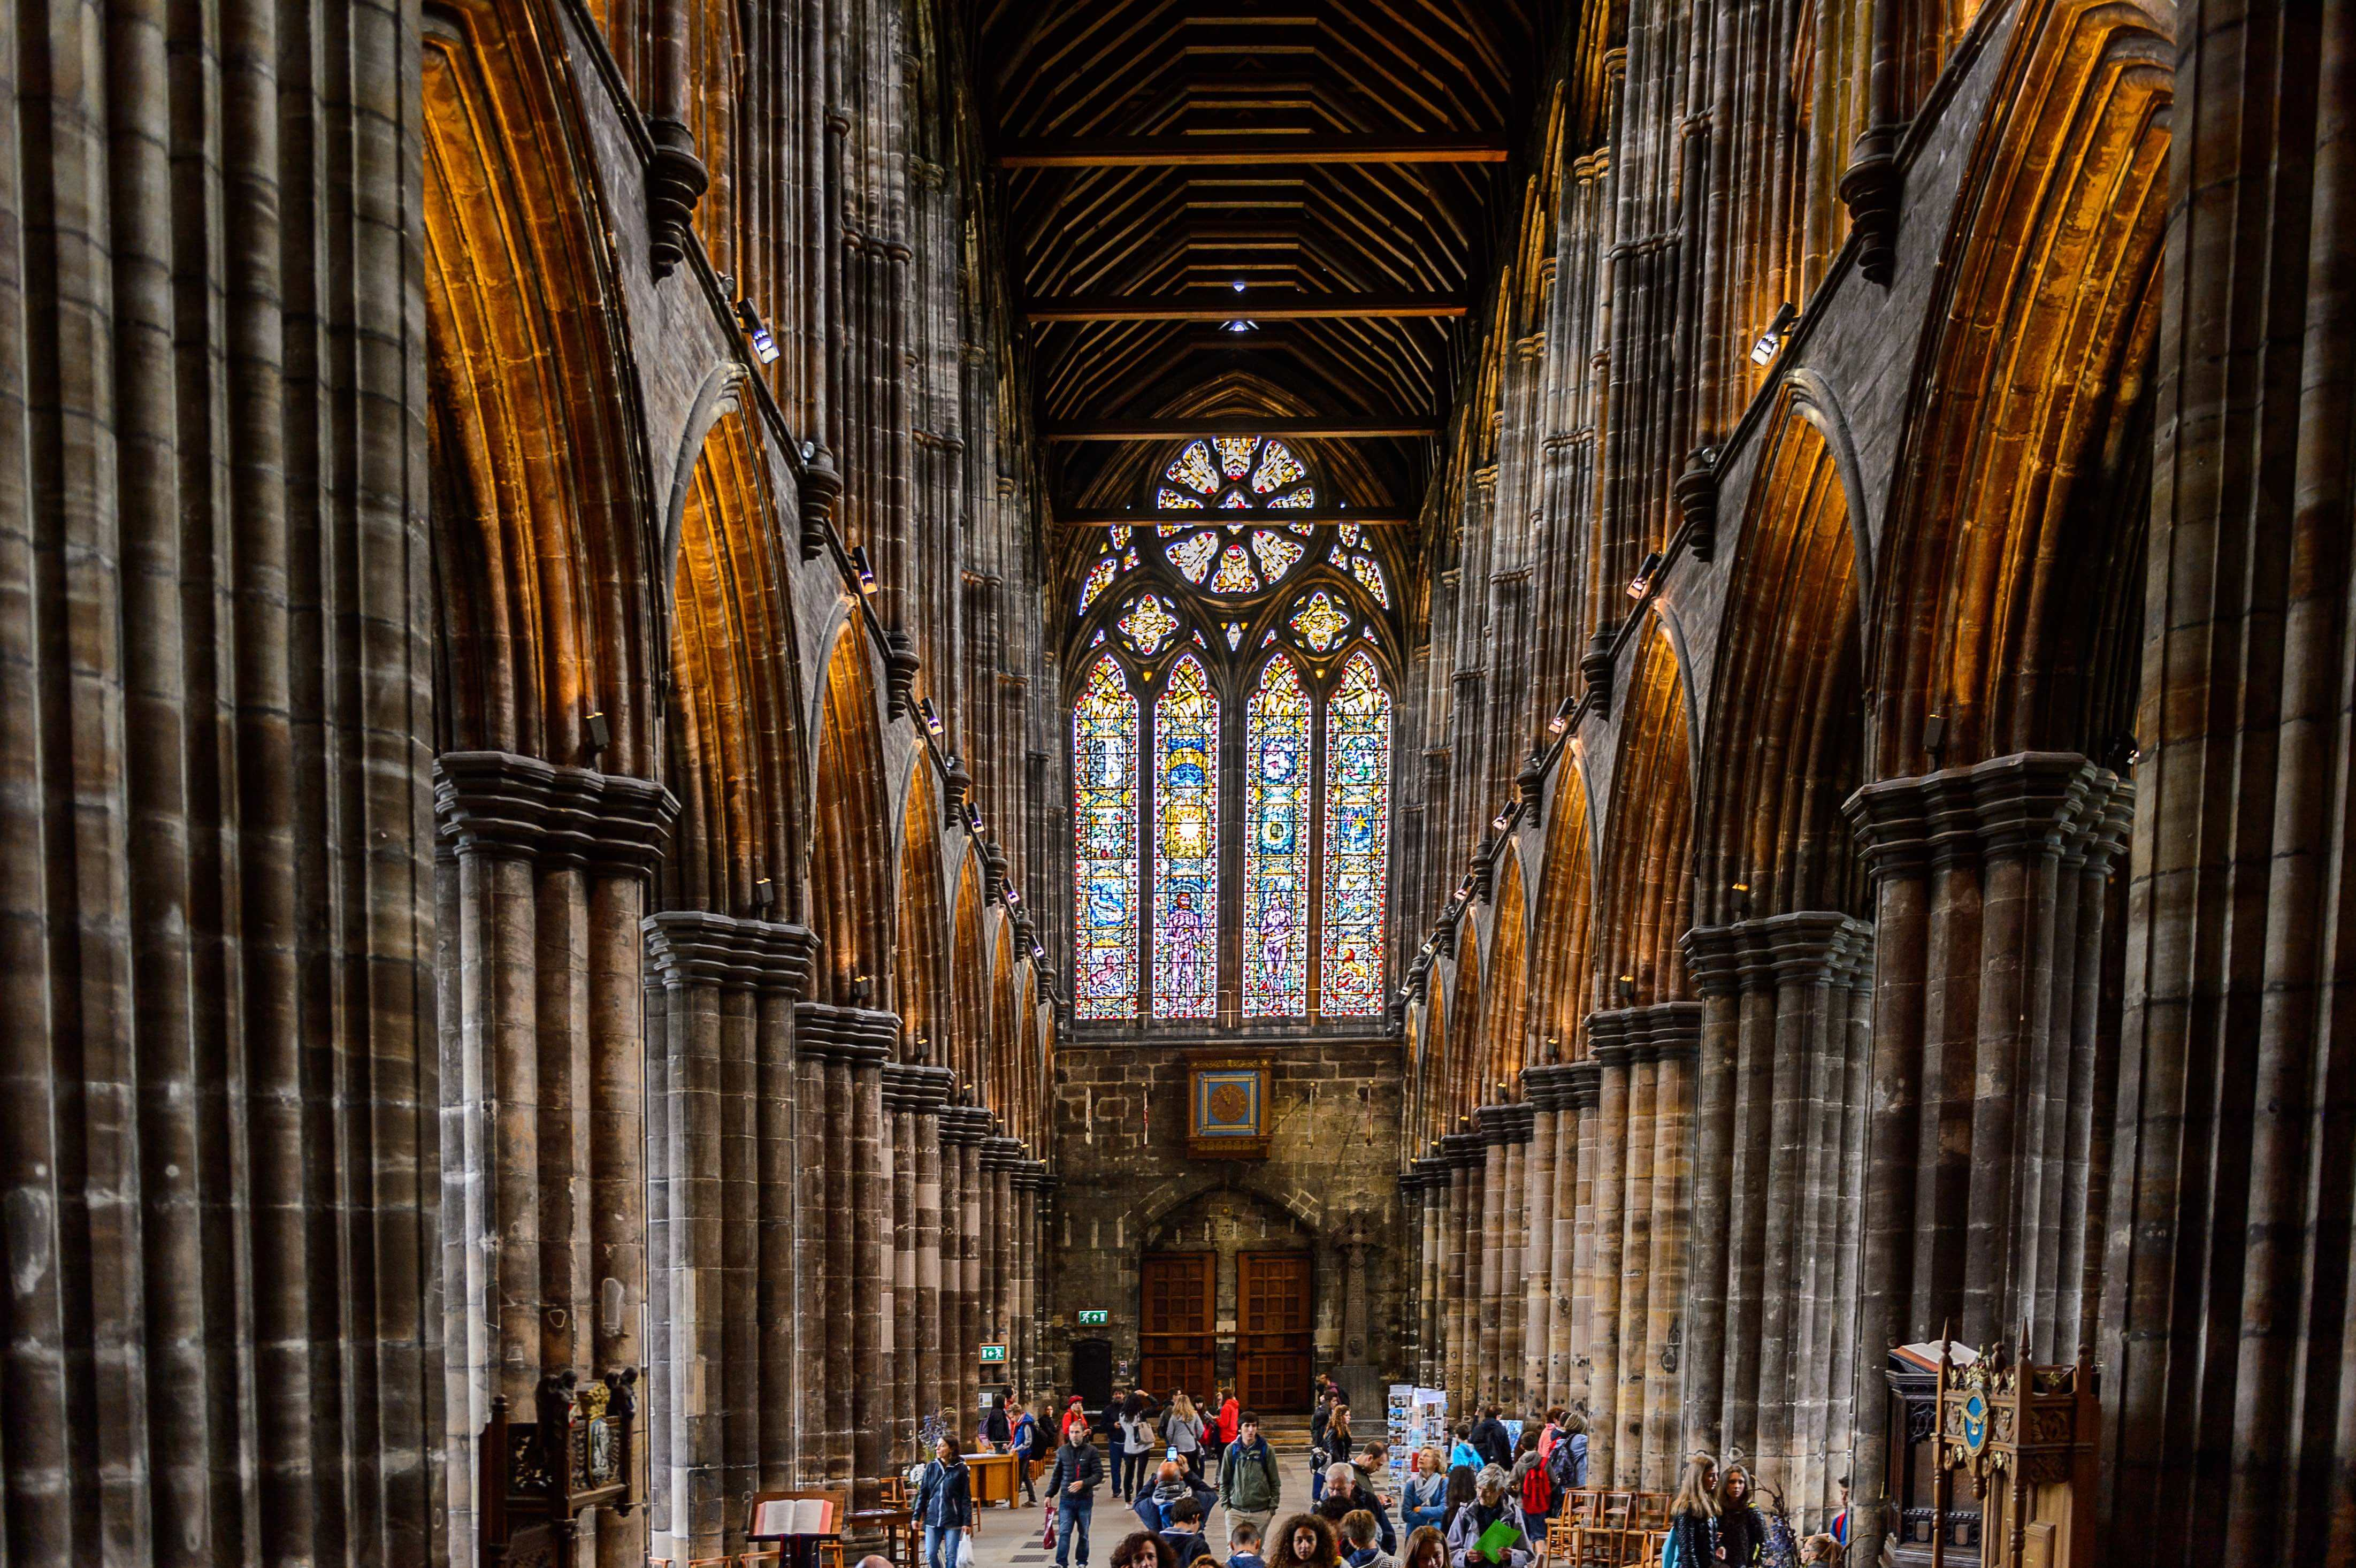 The striking interior of the Glasgow Cathedral - a definite must-see in Scotland.